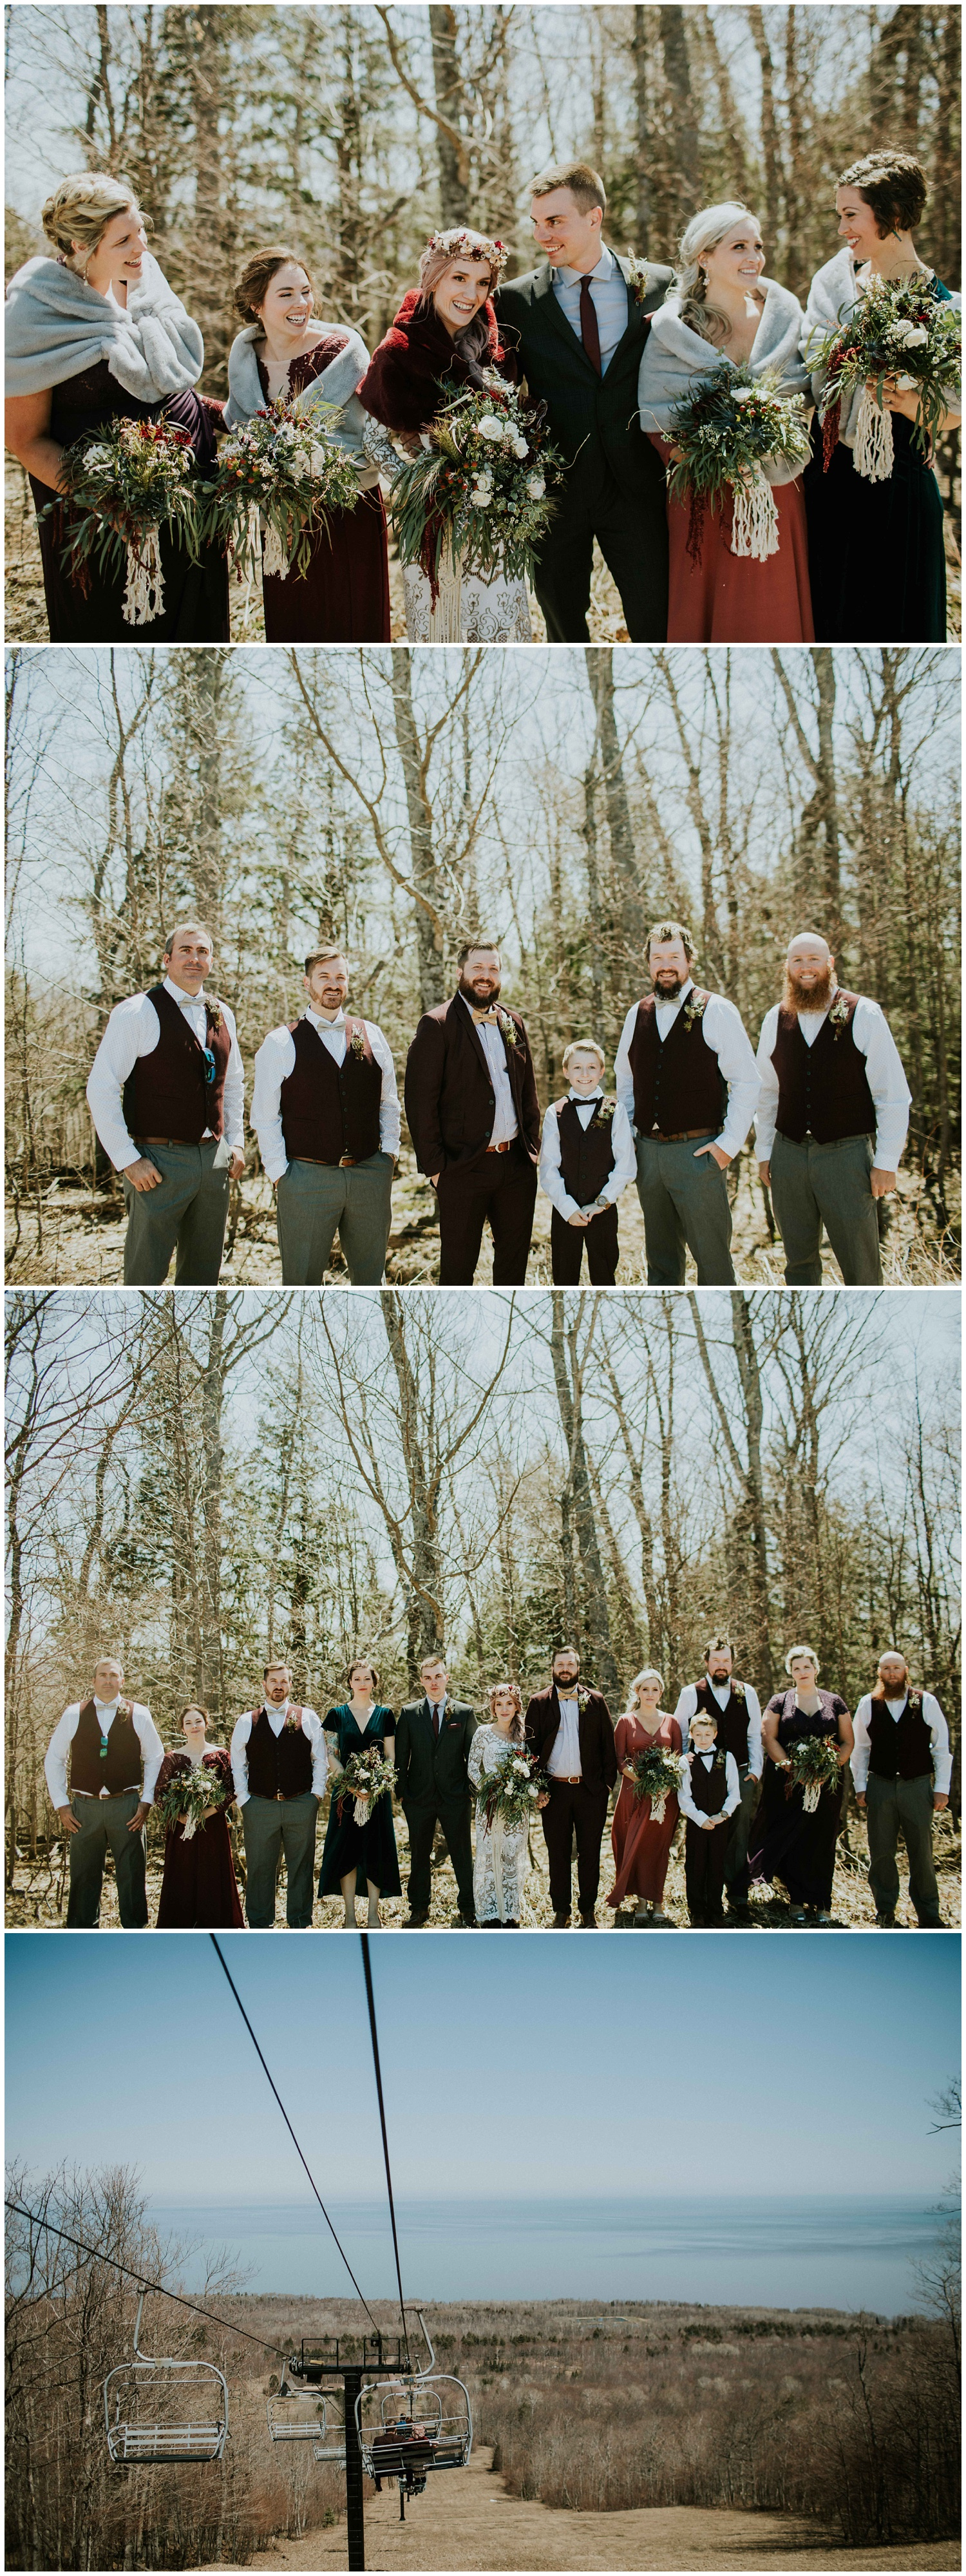 Porcupine Mountains May the Fourth Boho Star Wars Wedding Wisconsin Photographer Chloe Ann Photography_0004.jpg